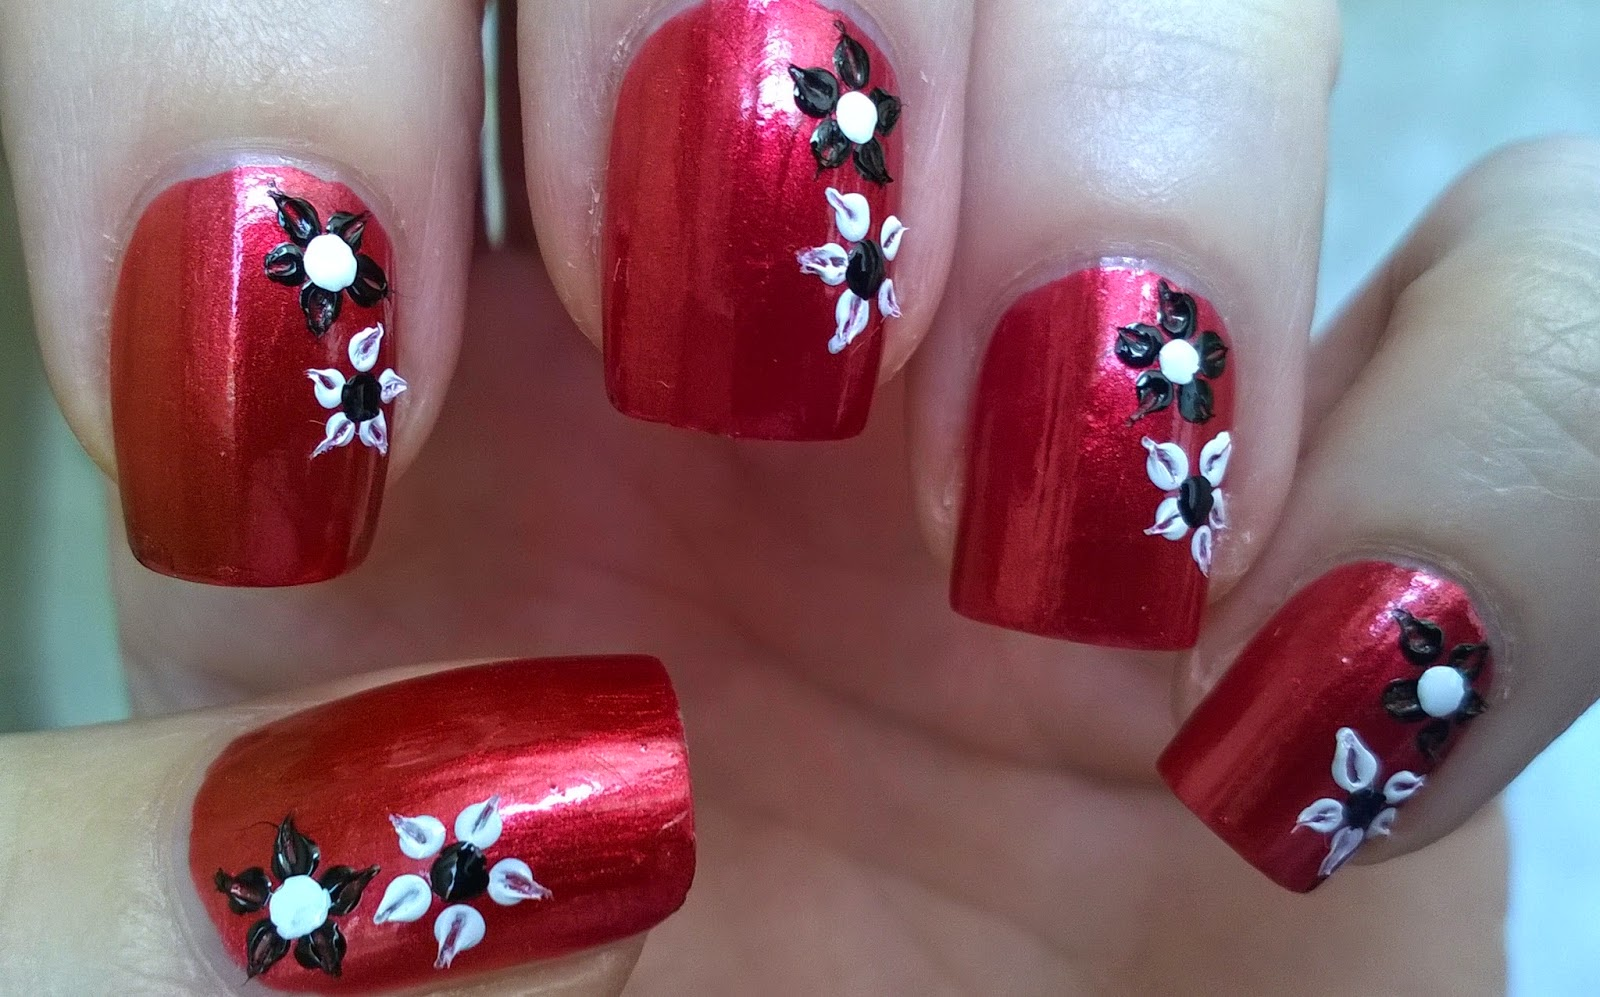 Life world women dark red floral nail art by using toothpick dark red floral nail art by using toothpick dotting tool prinsesfo Gallery